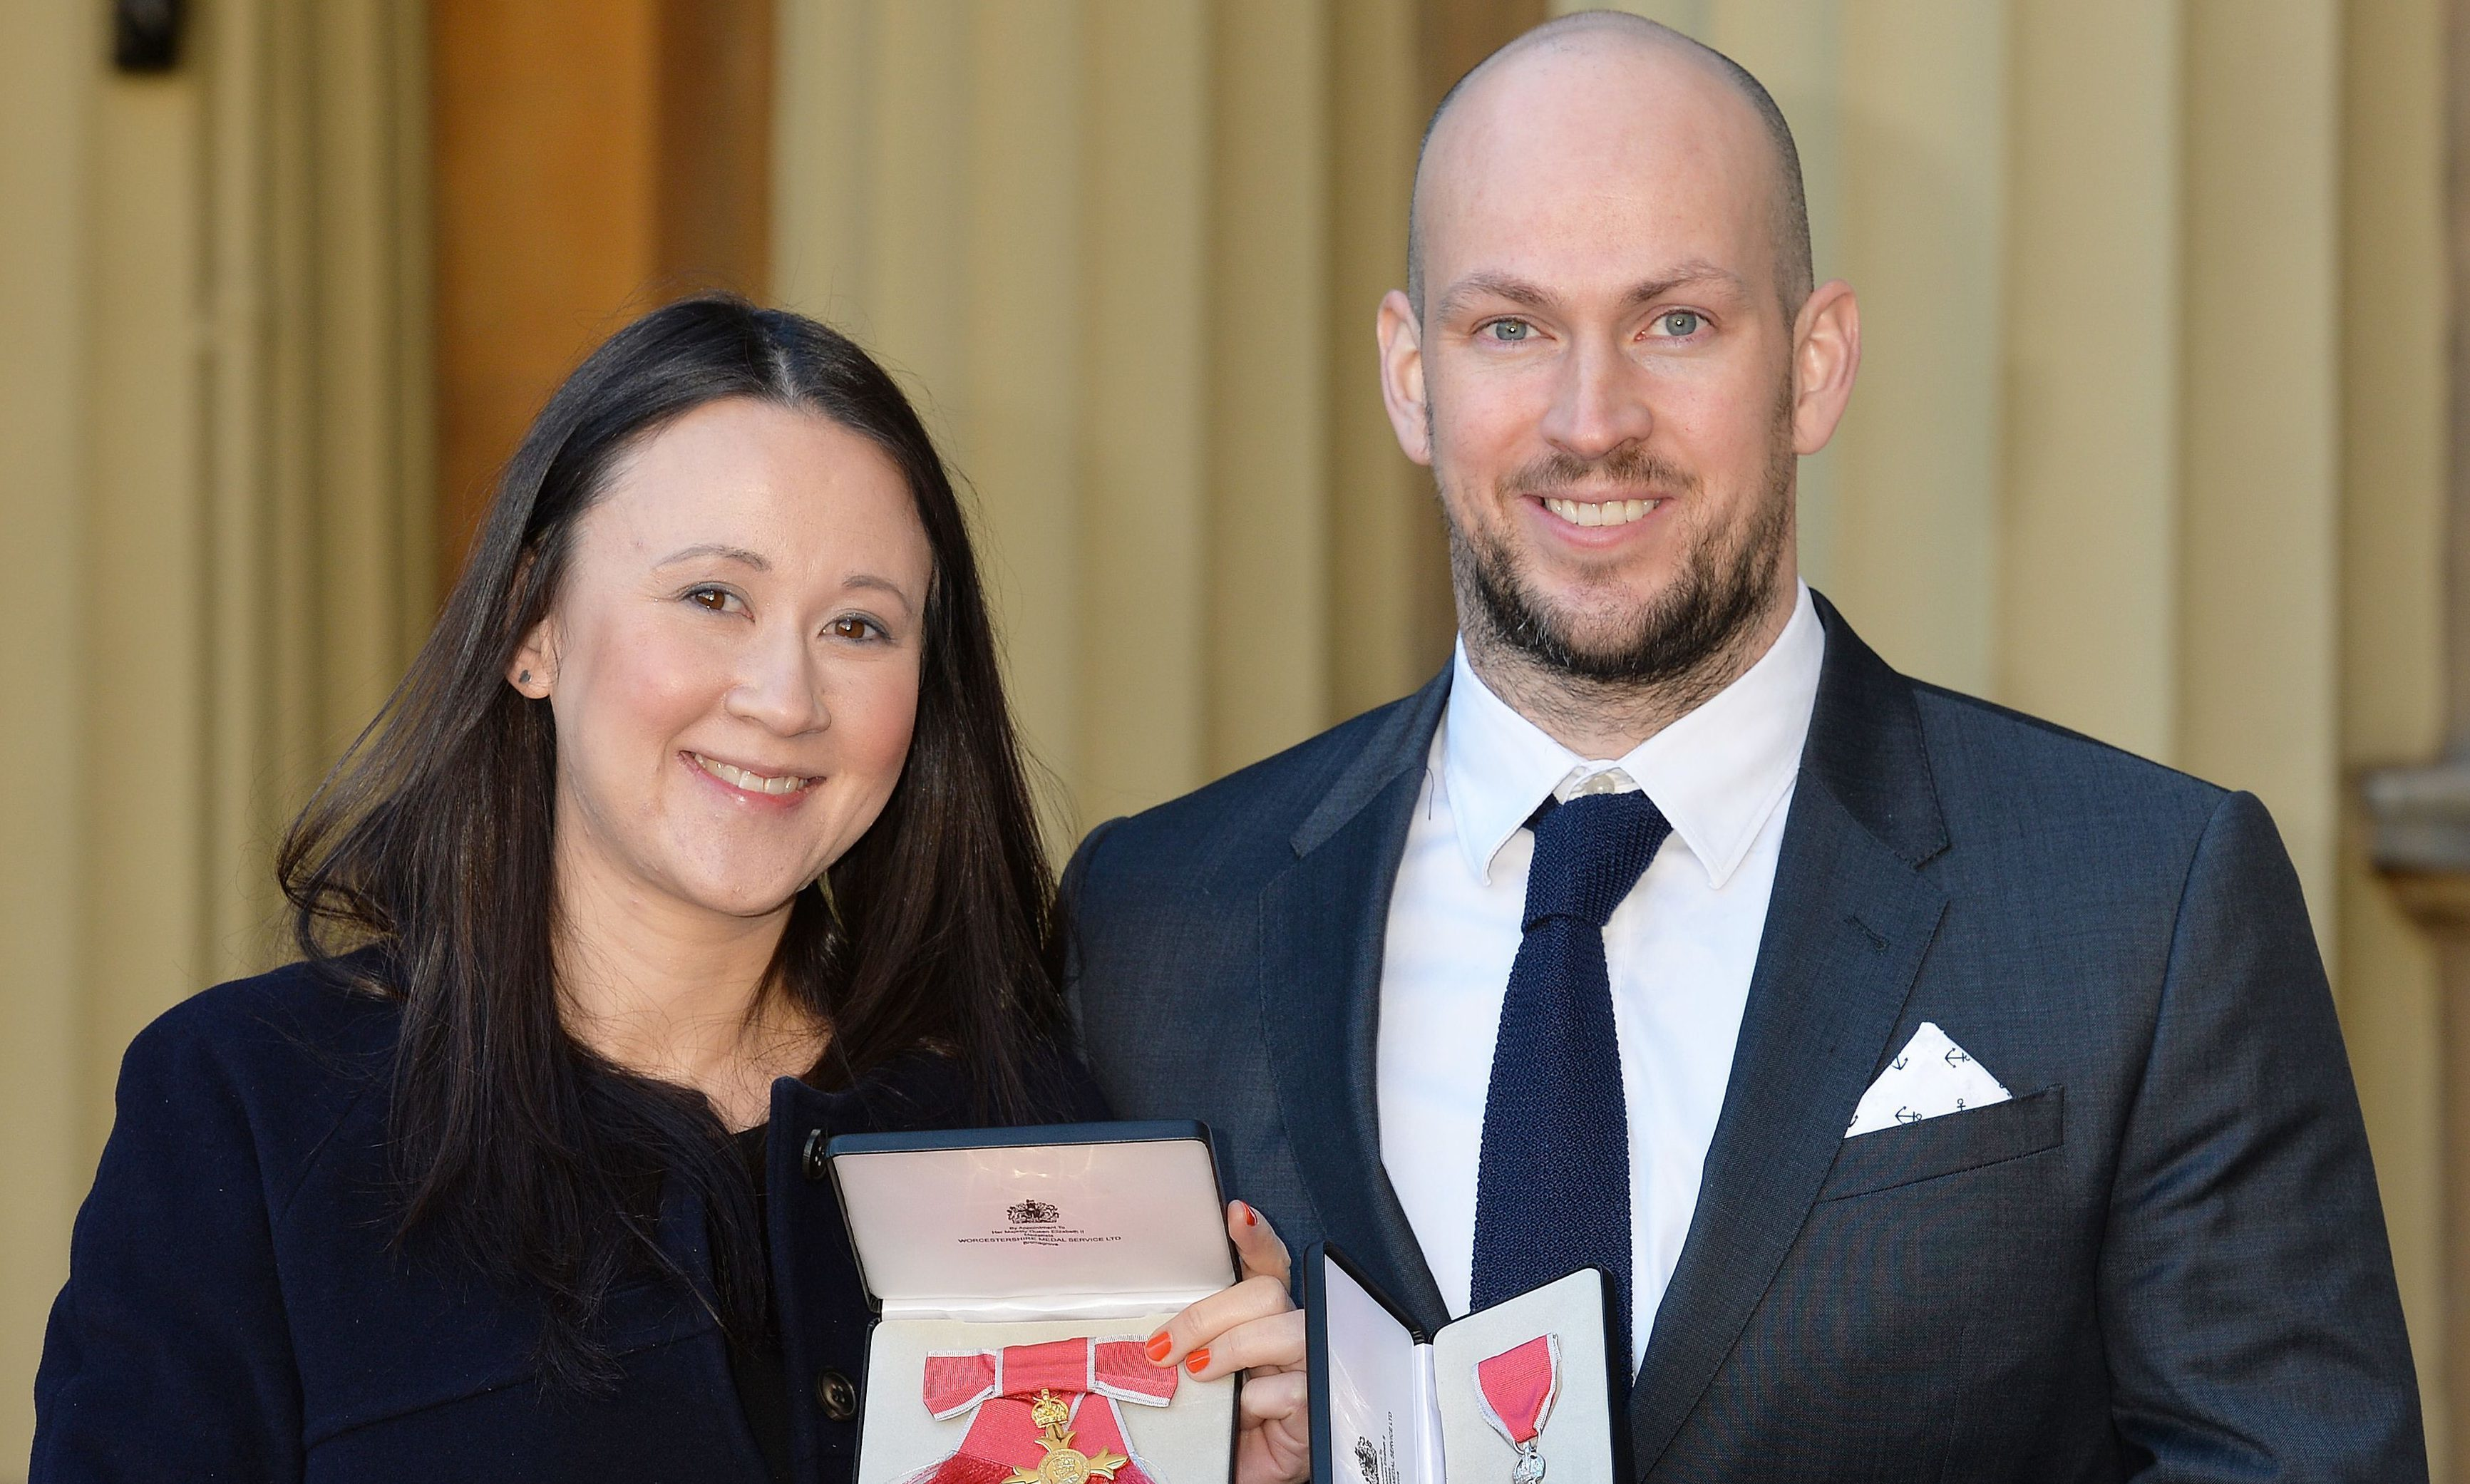 Johanna Basford with her OBE and husband James Watt with his MBE which they received from the Duke of Cambridge during an investiture ceremony at Buckingham Place in 2016.